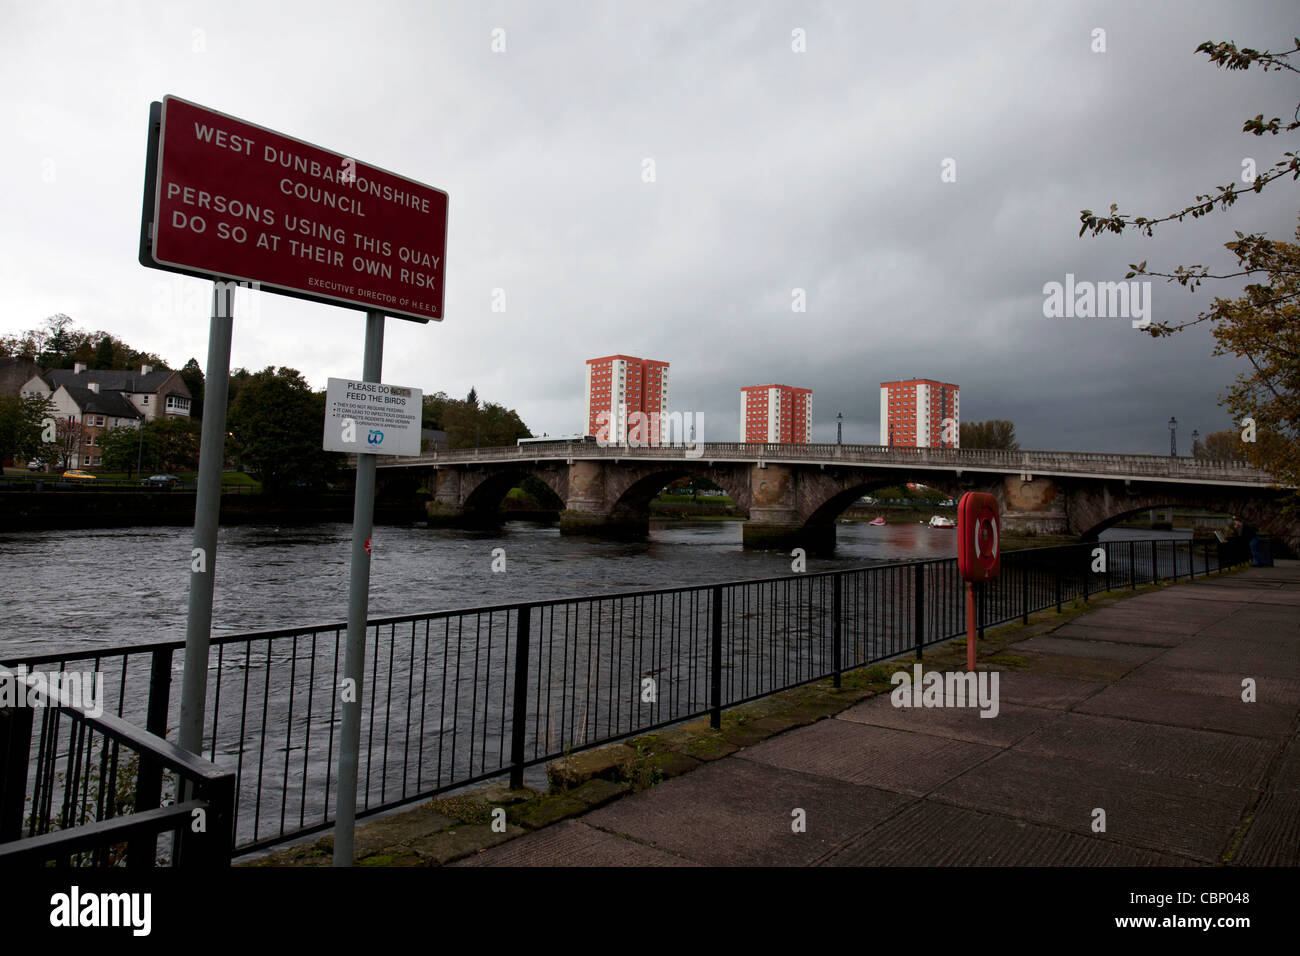 Dumbarton, Scotland lies at the junction of the River Leven and the Clyde, tower blocks past the bridge - Stock Image